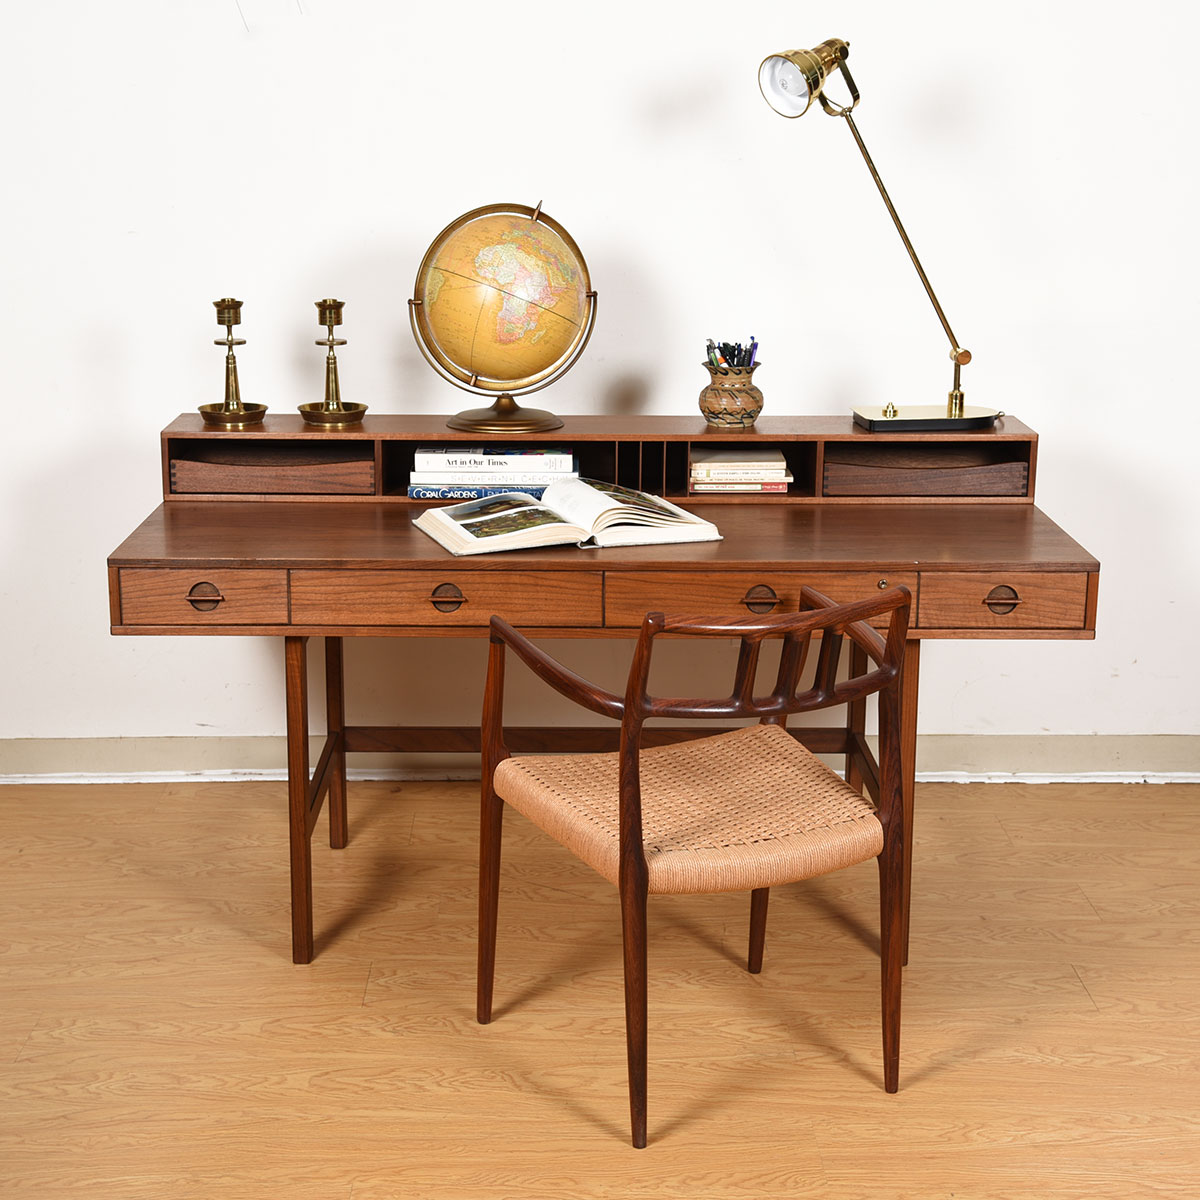 Lovig Walnut 'Flip-Top' Danish Modern Expanding Partner's Desk